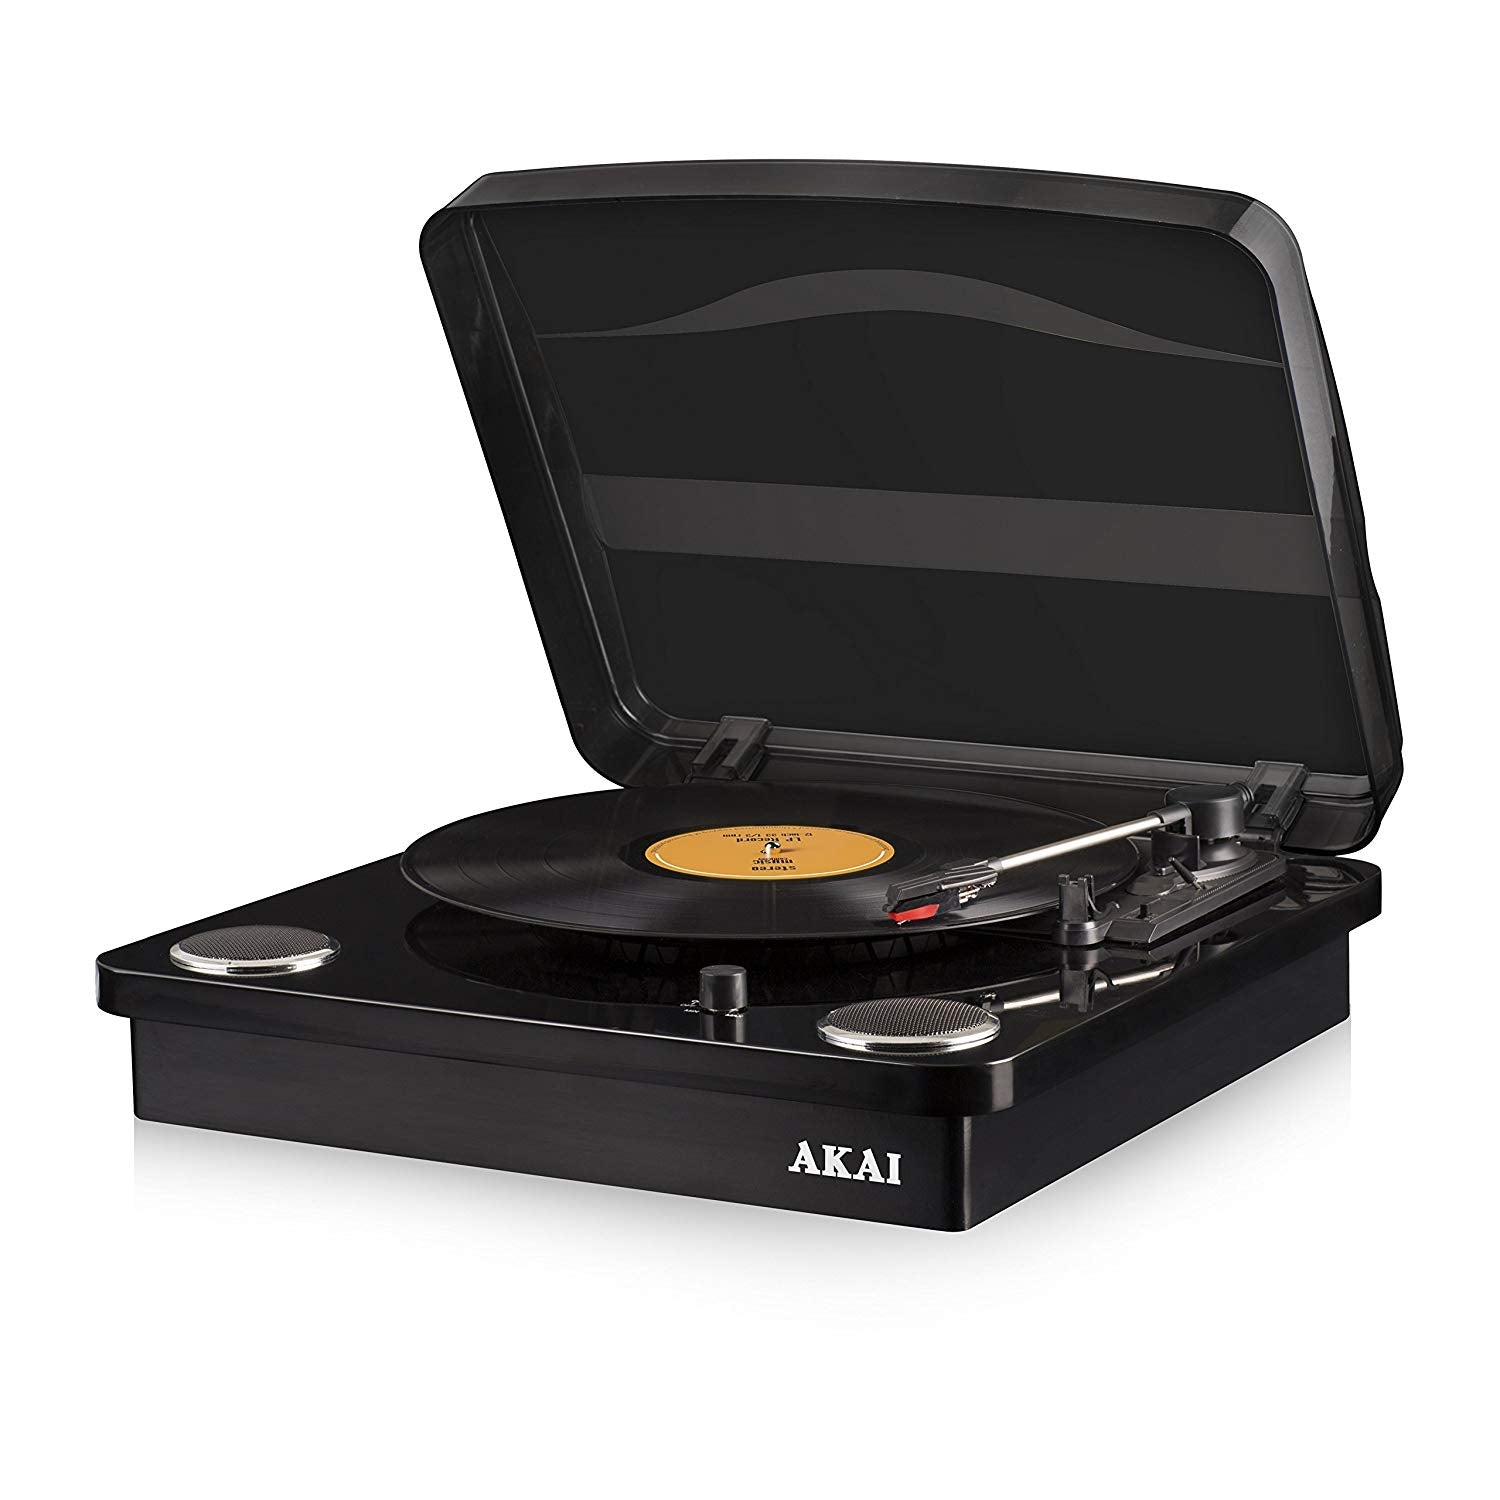 AKAI CLASSIC 3 SPEED TURNTABLE BLACK [TECH & TURNTABLES] GOLDEN DISCS